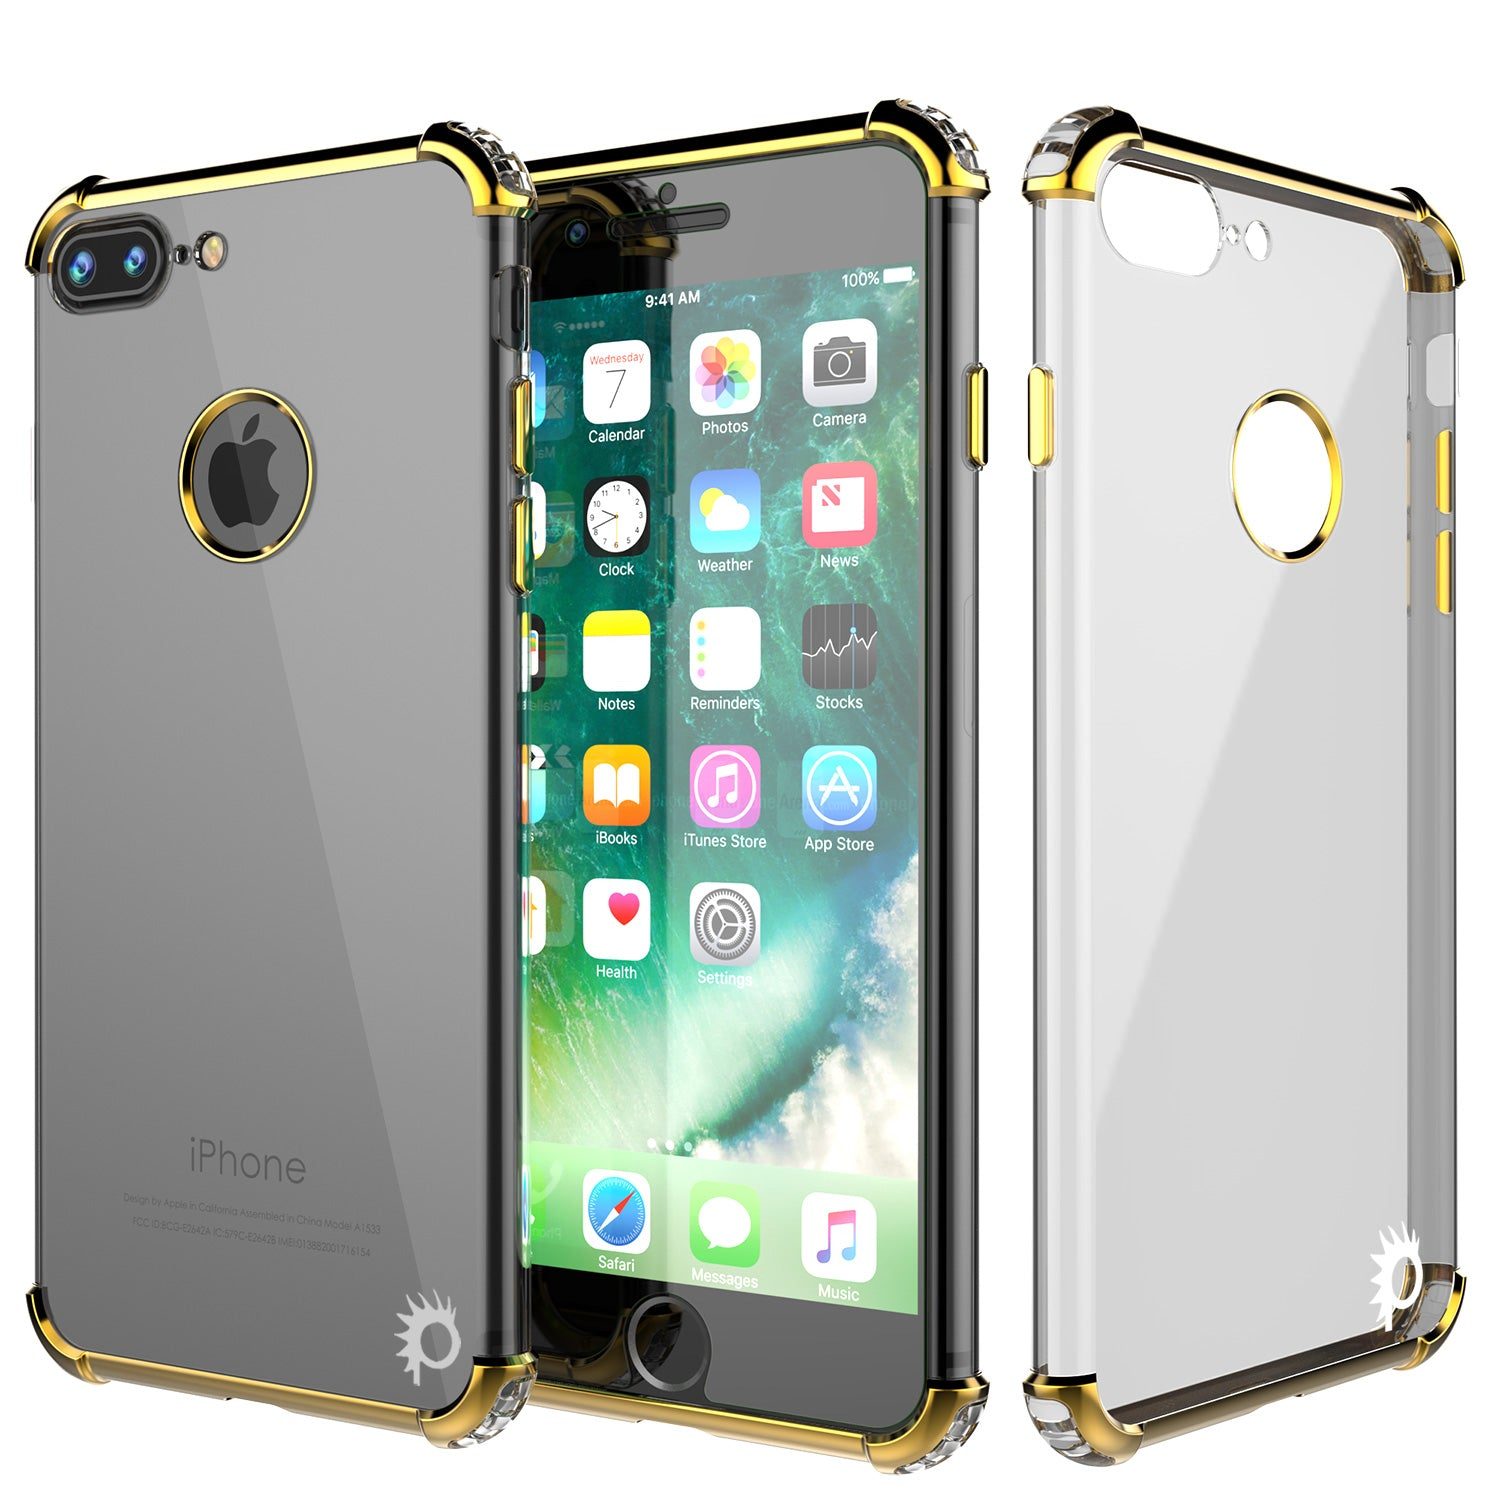 reputable site 85354 9ea53 iPhone 7 PLUS Case, Punkcase [BLAZE Gold SERIES] Protective Cover W/  PunkShield Screen Protector